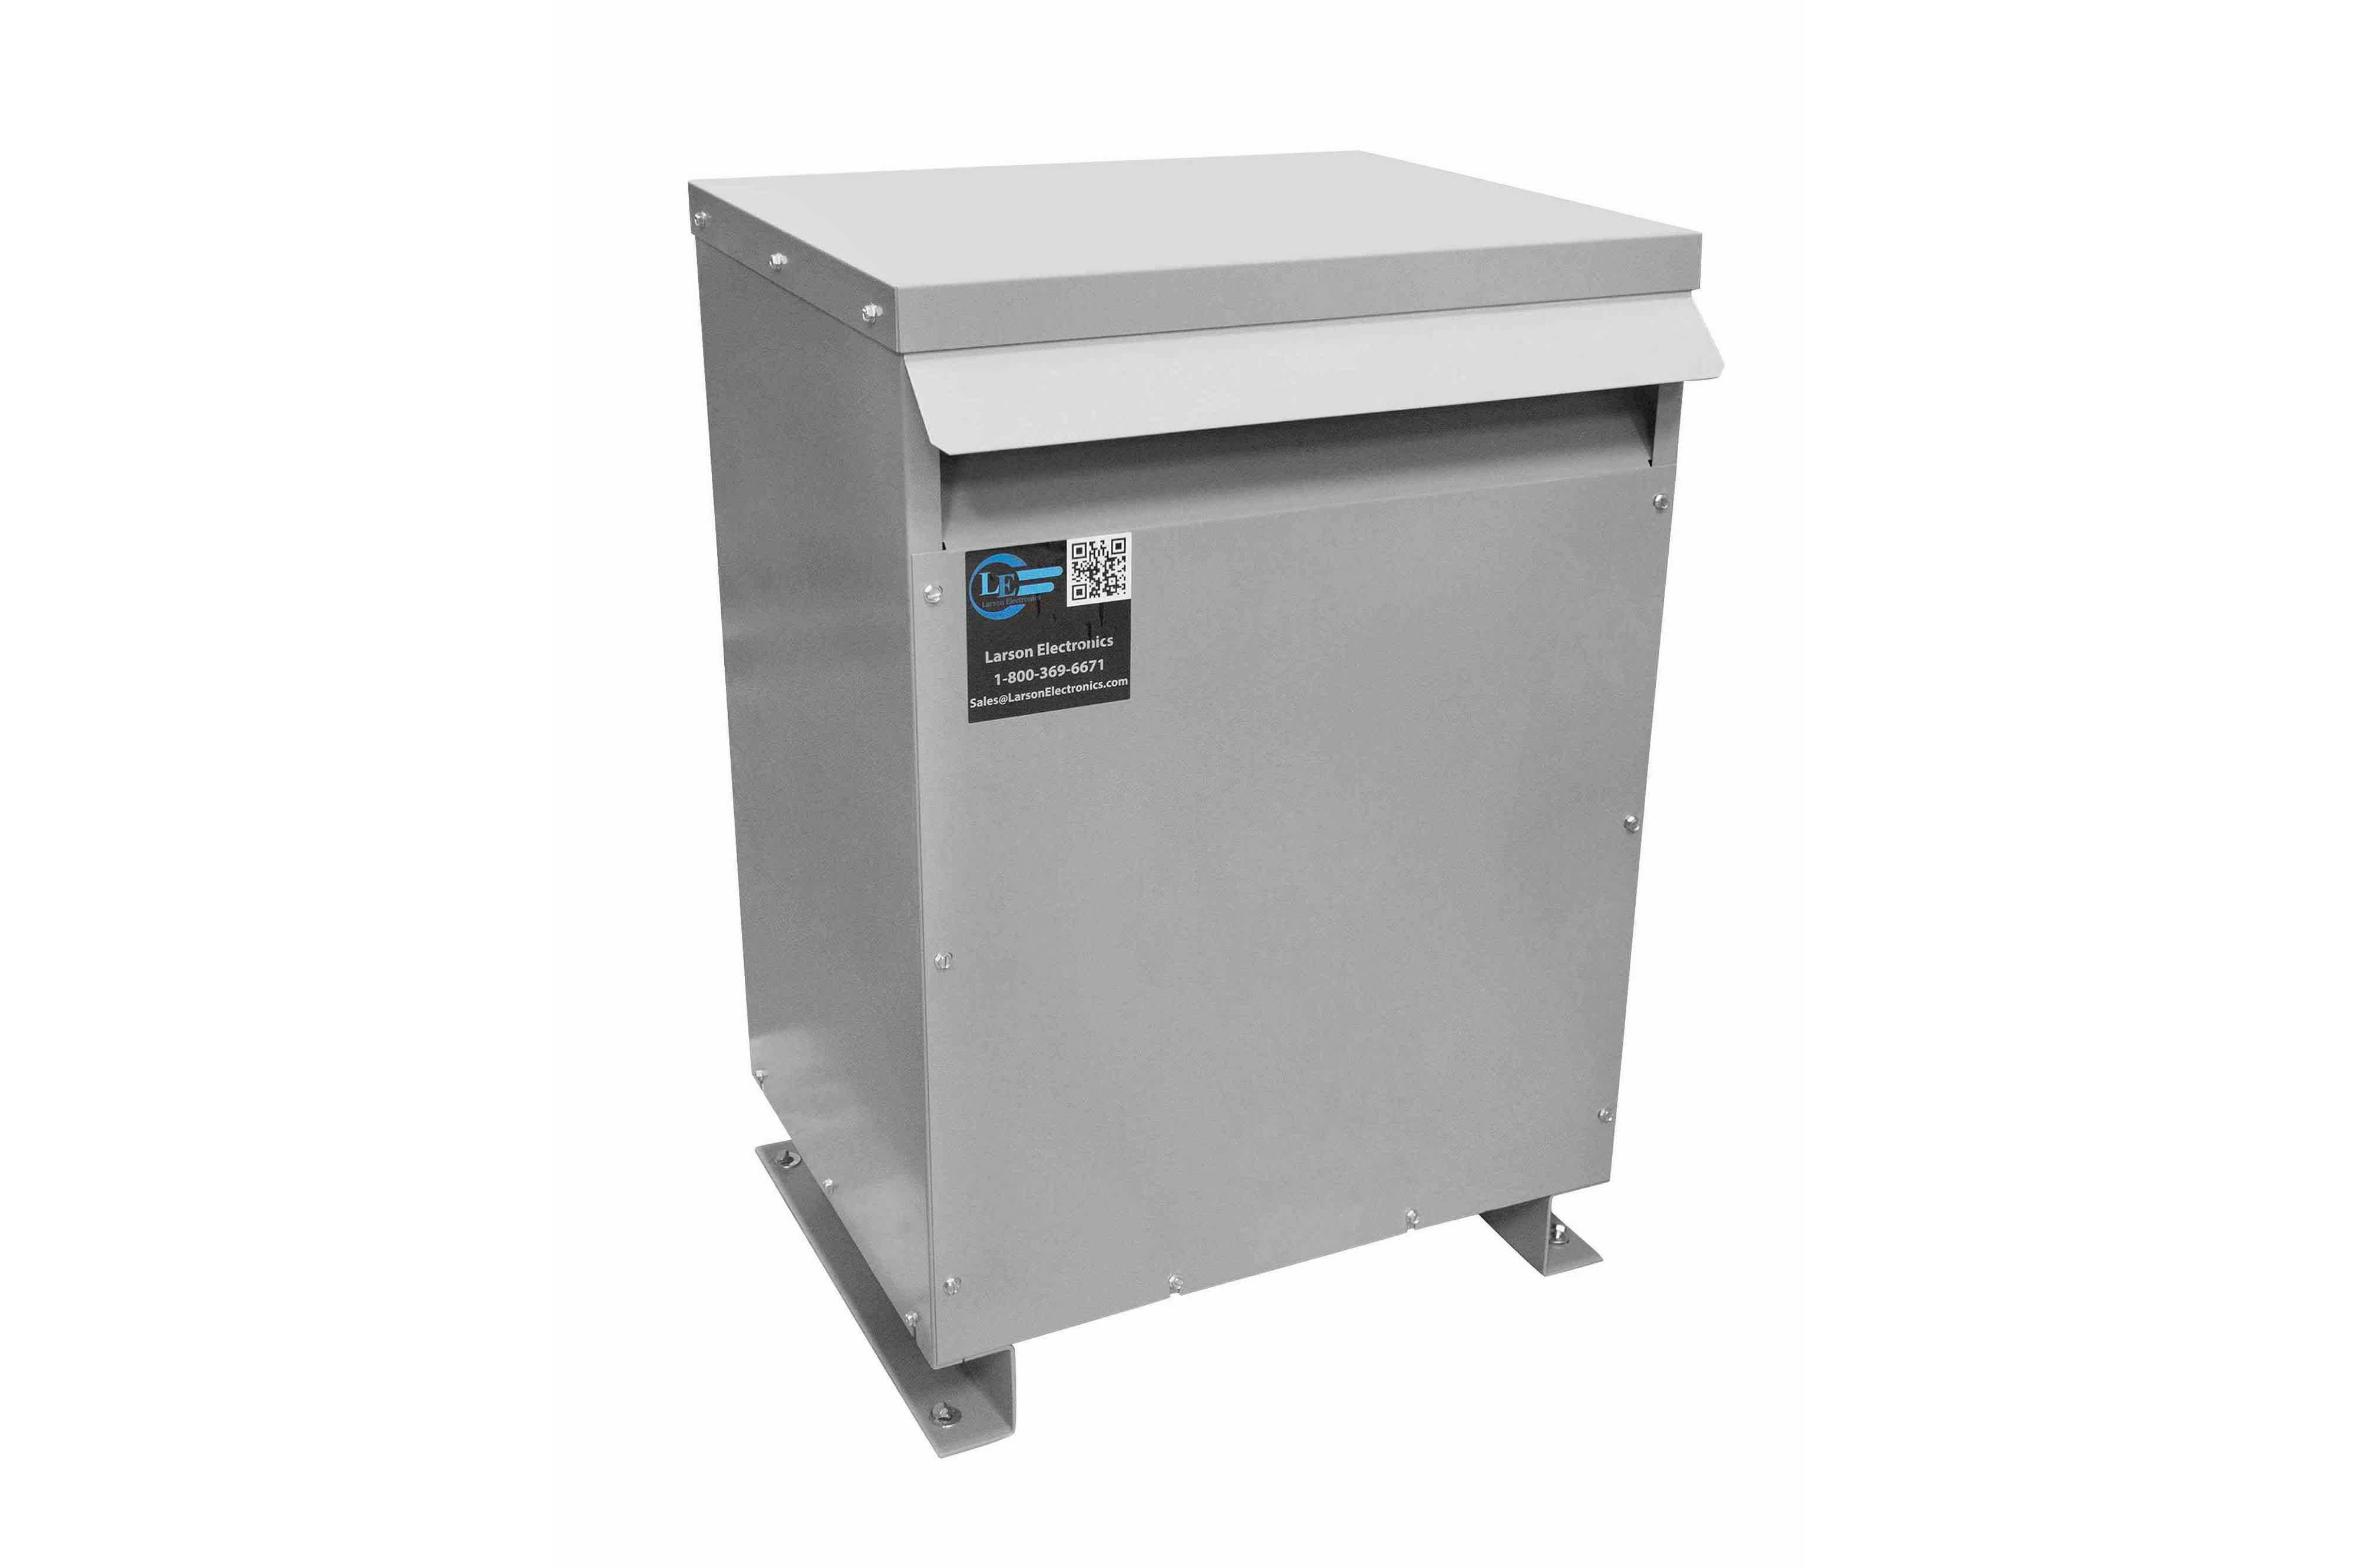 700 kVA 3PH Isolation Transformer, 240V Wye Primary, 400V Delta Secondary, N3R, Ventilated, 60 Hz